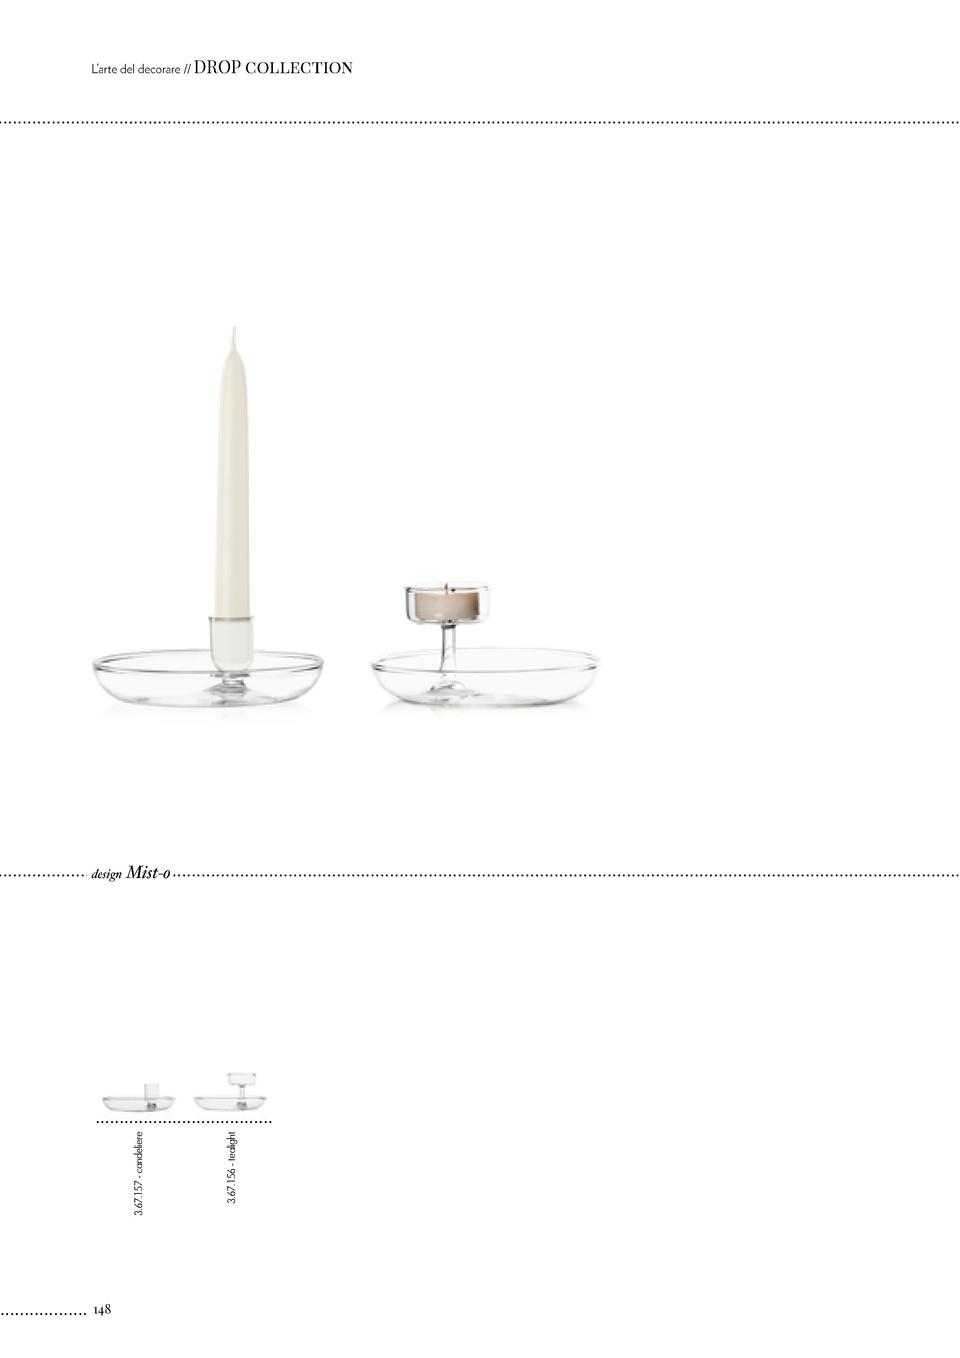 L   arte del decorare    DROP  148  3.67.156 - tealight  Mist-o  3.67.157 - candeliere  design  collection